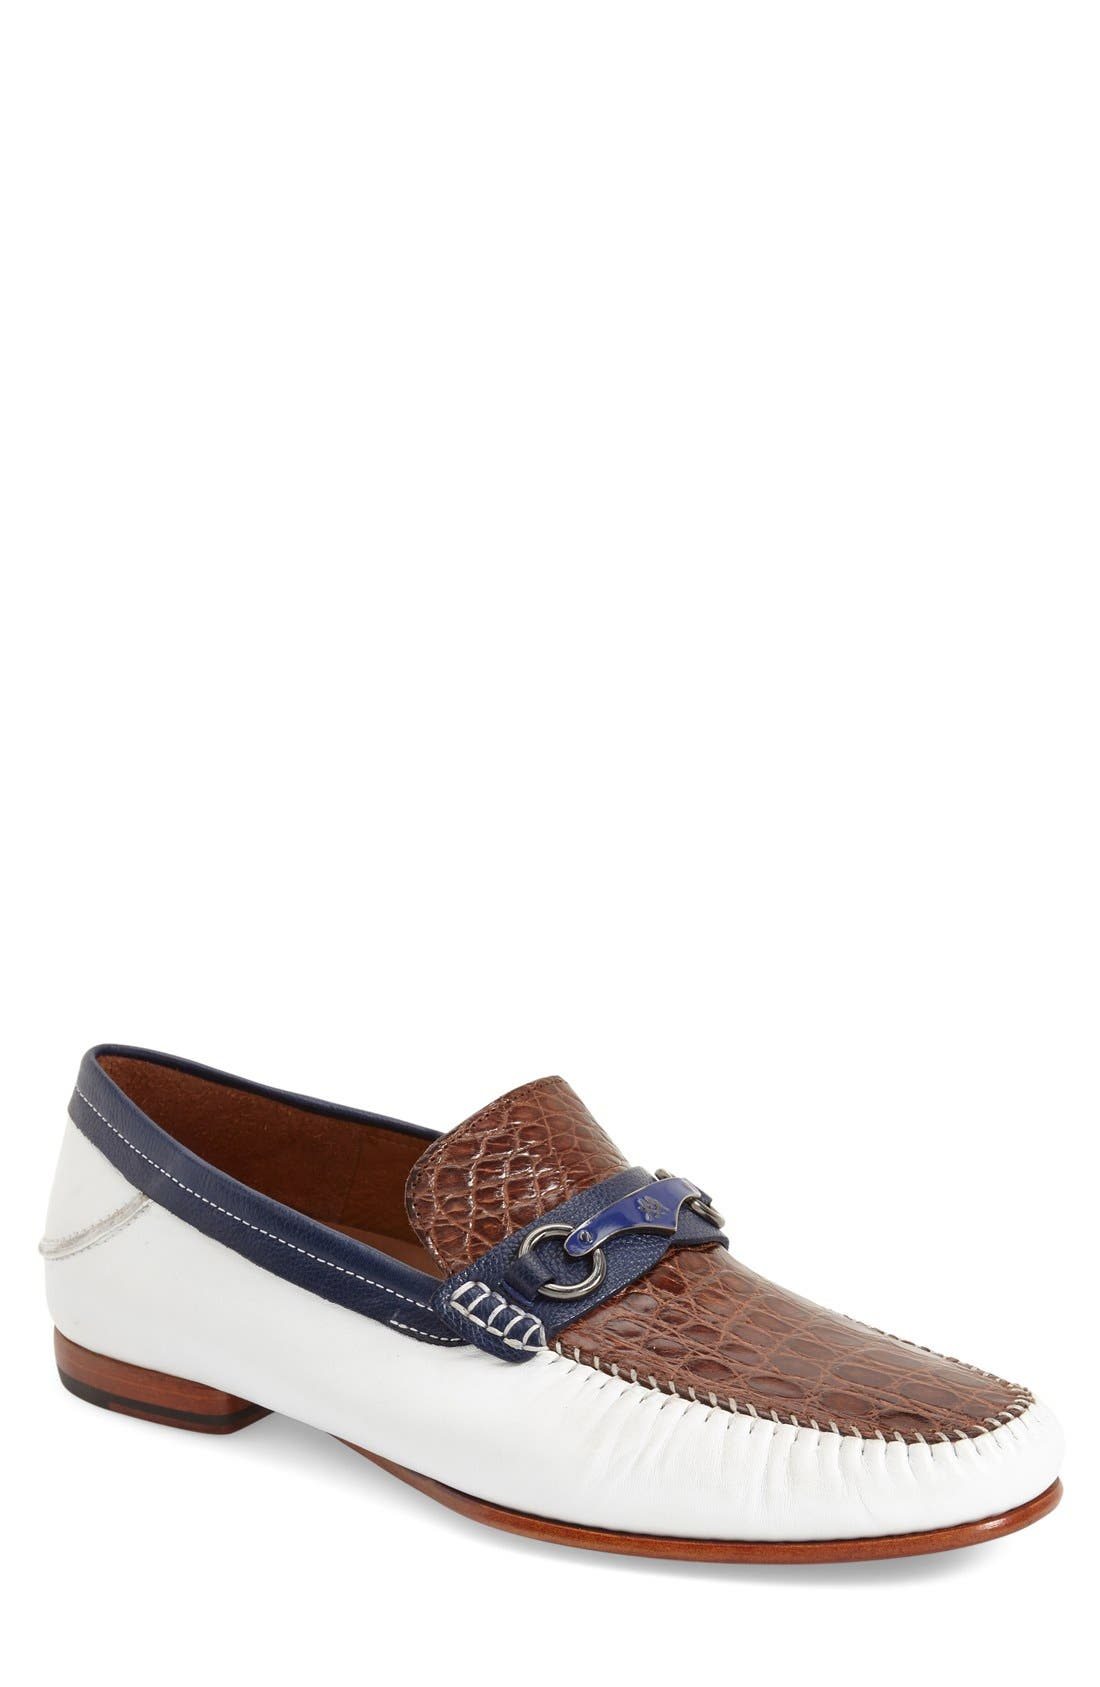 Alternate Image 1 Selected - Mezlan 'Gaudi Venetian' Genuine Crocodile Bit Loafer (Men)